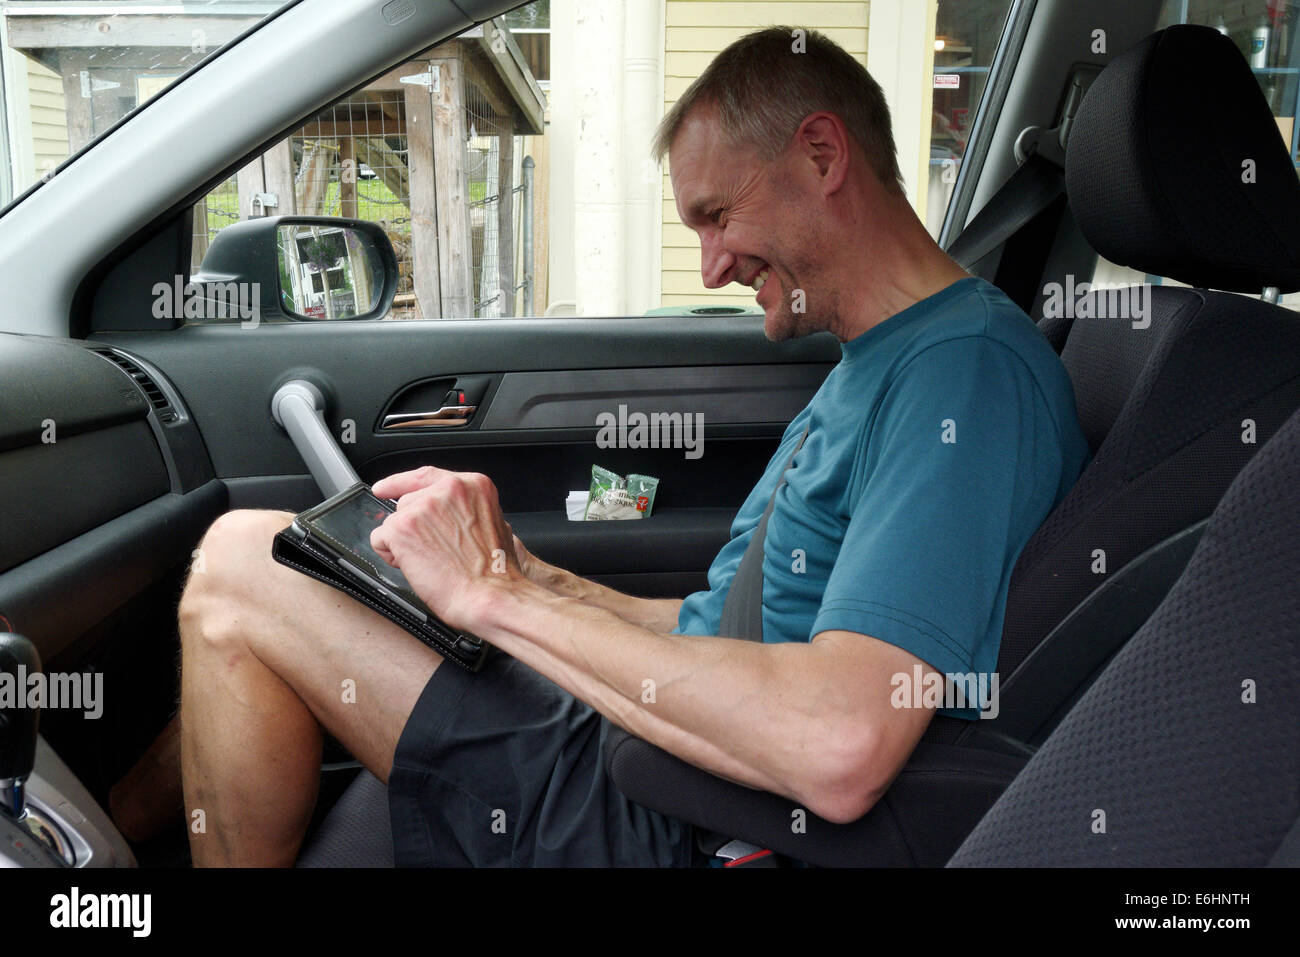 Middle Aged Man In The Seat Of A Car Stock Photos & Middle Aged Man